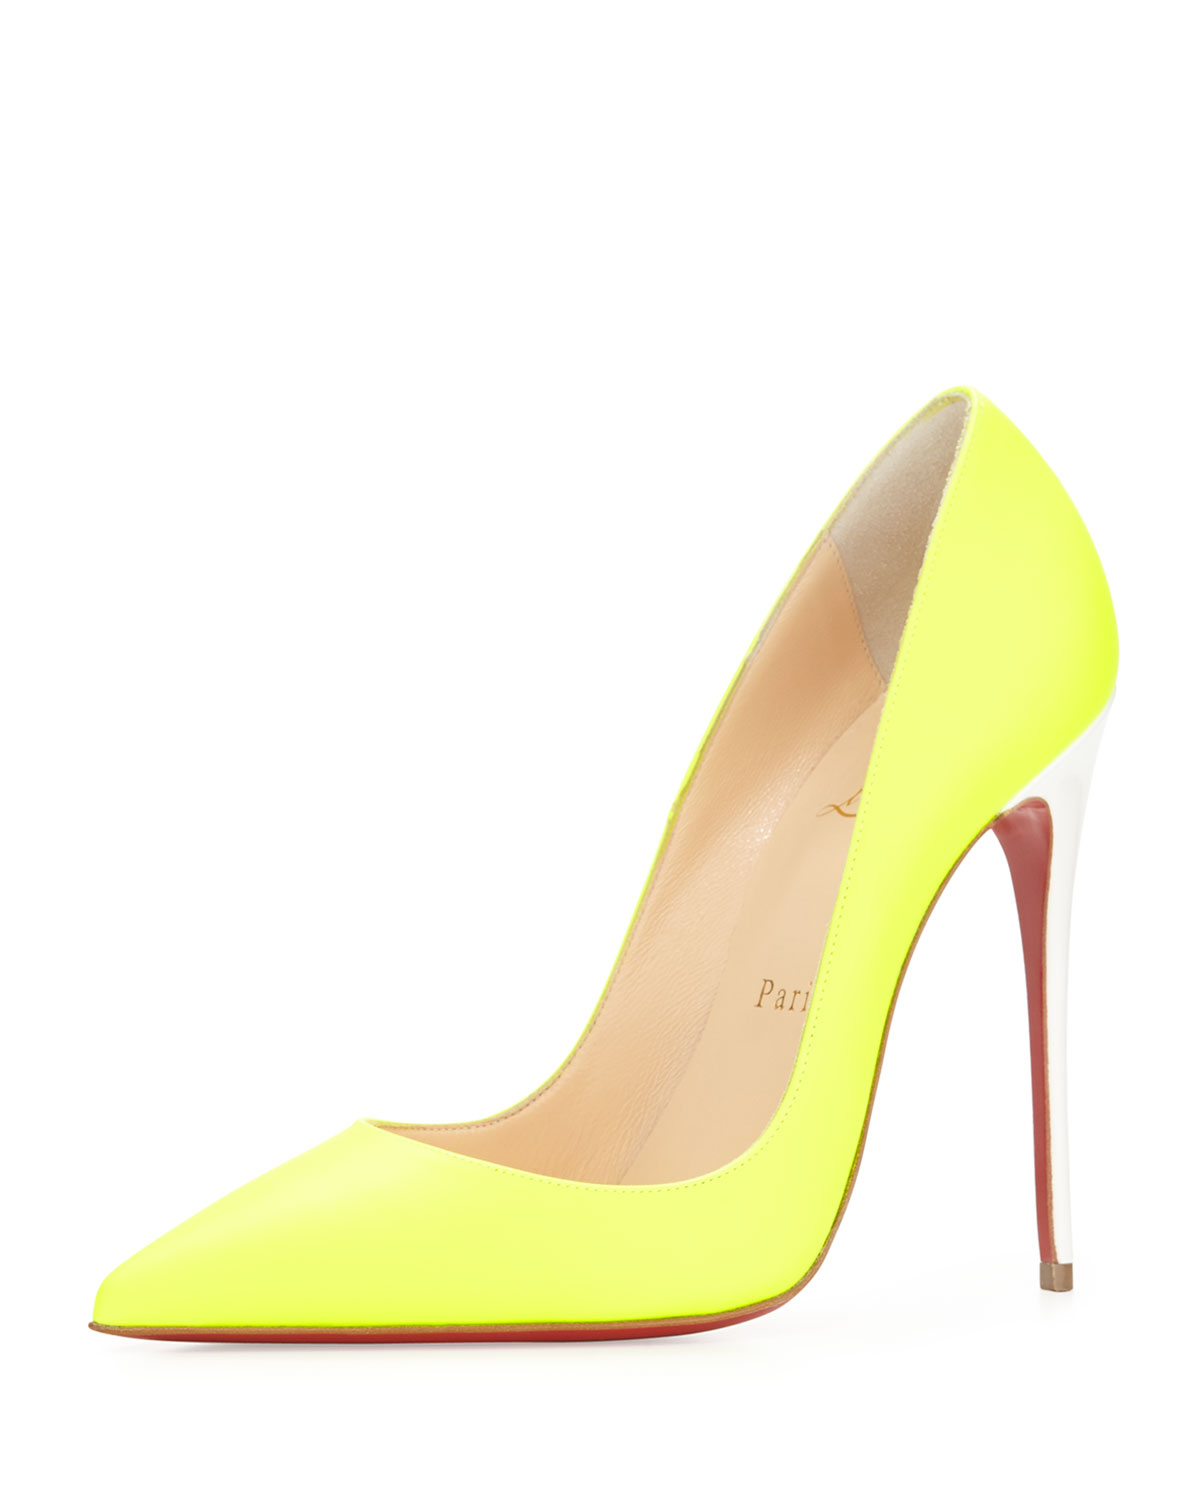 christian louboutin yellow so kate